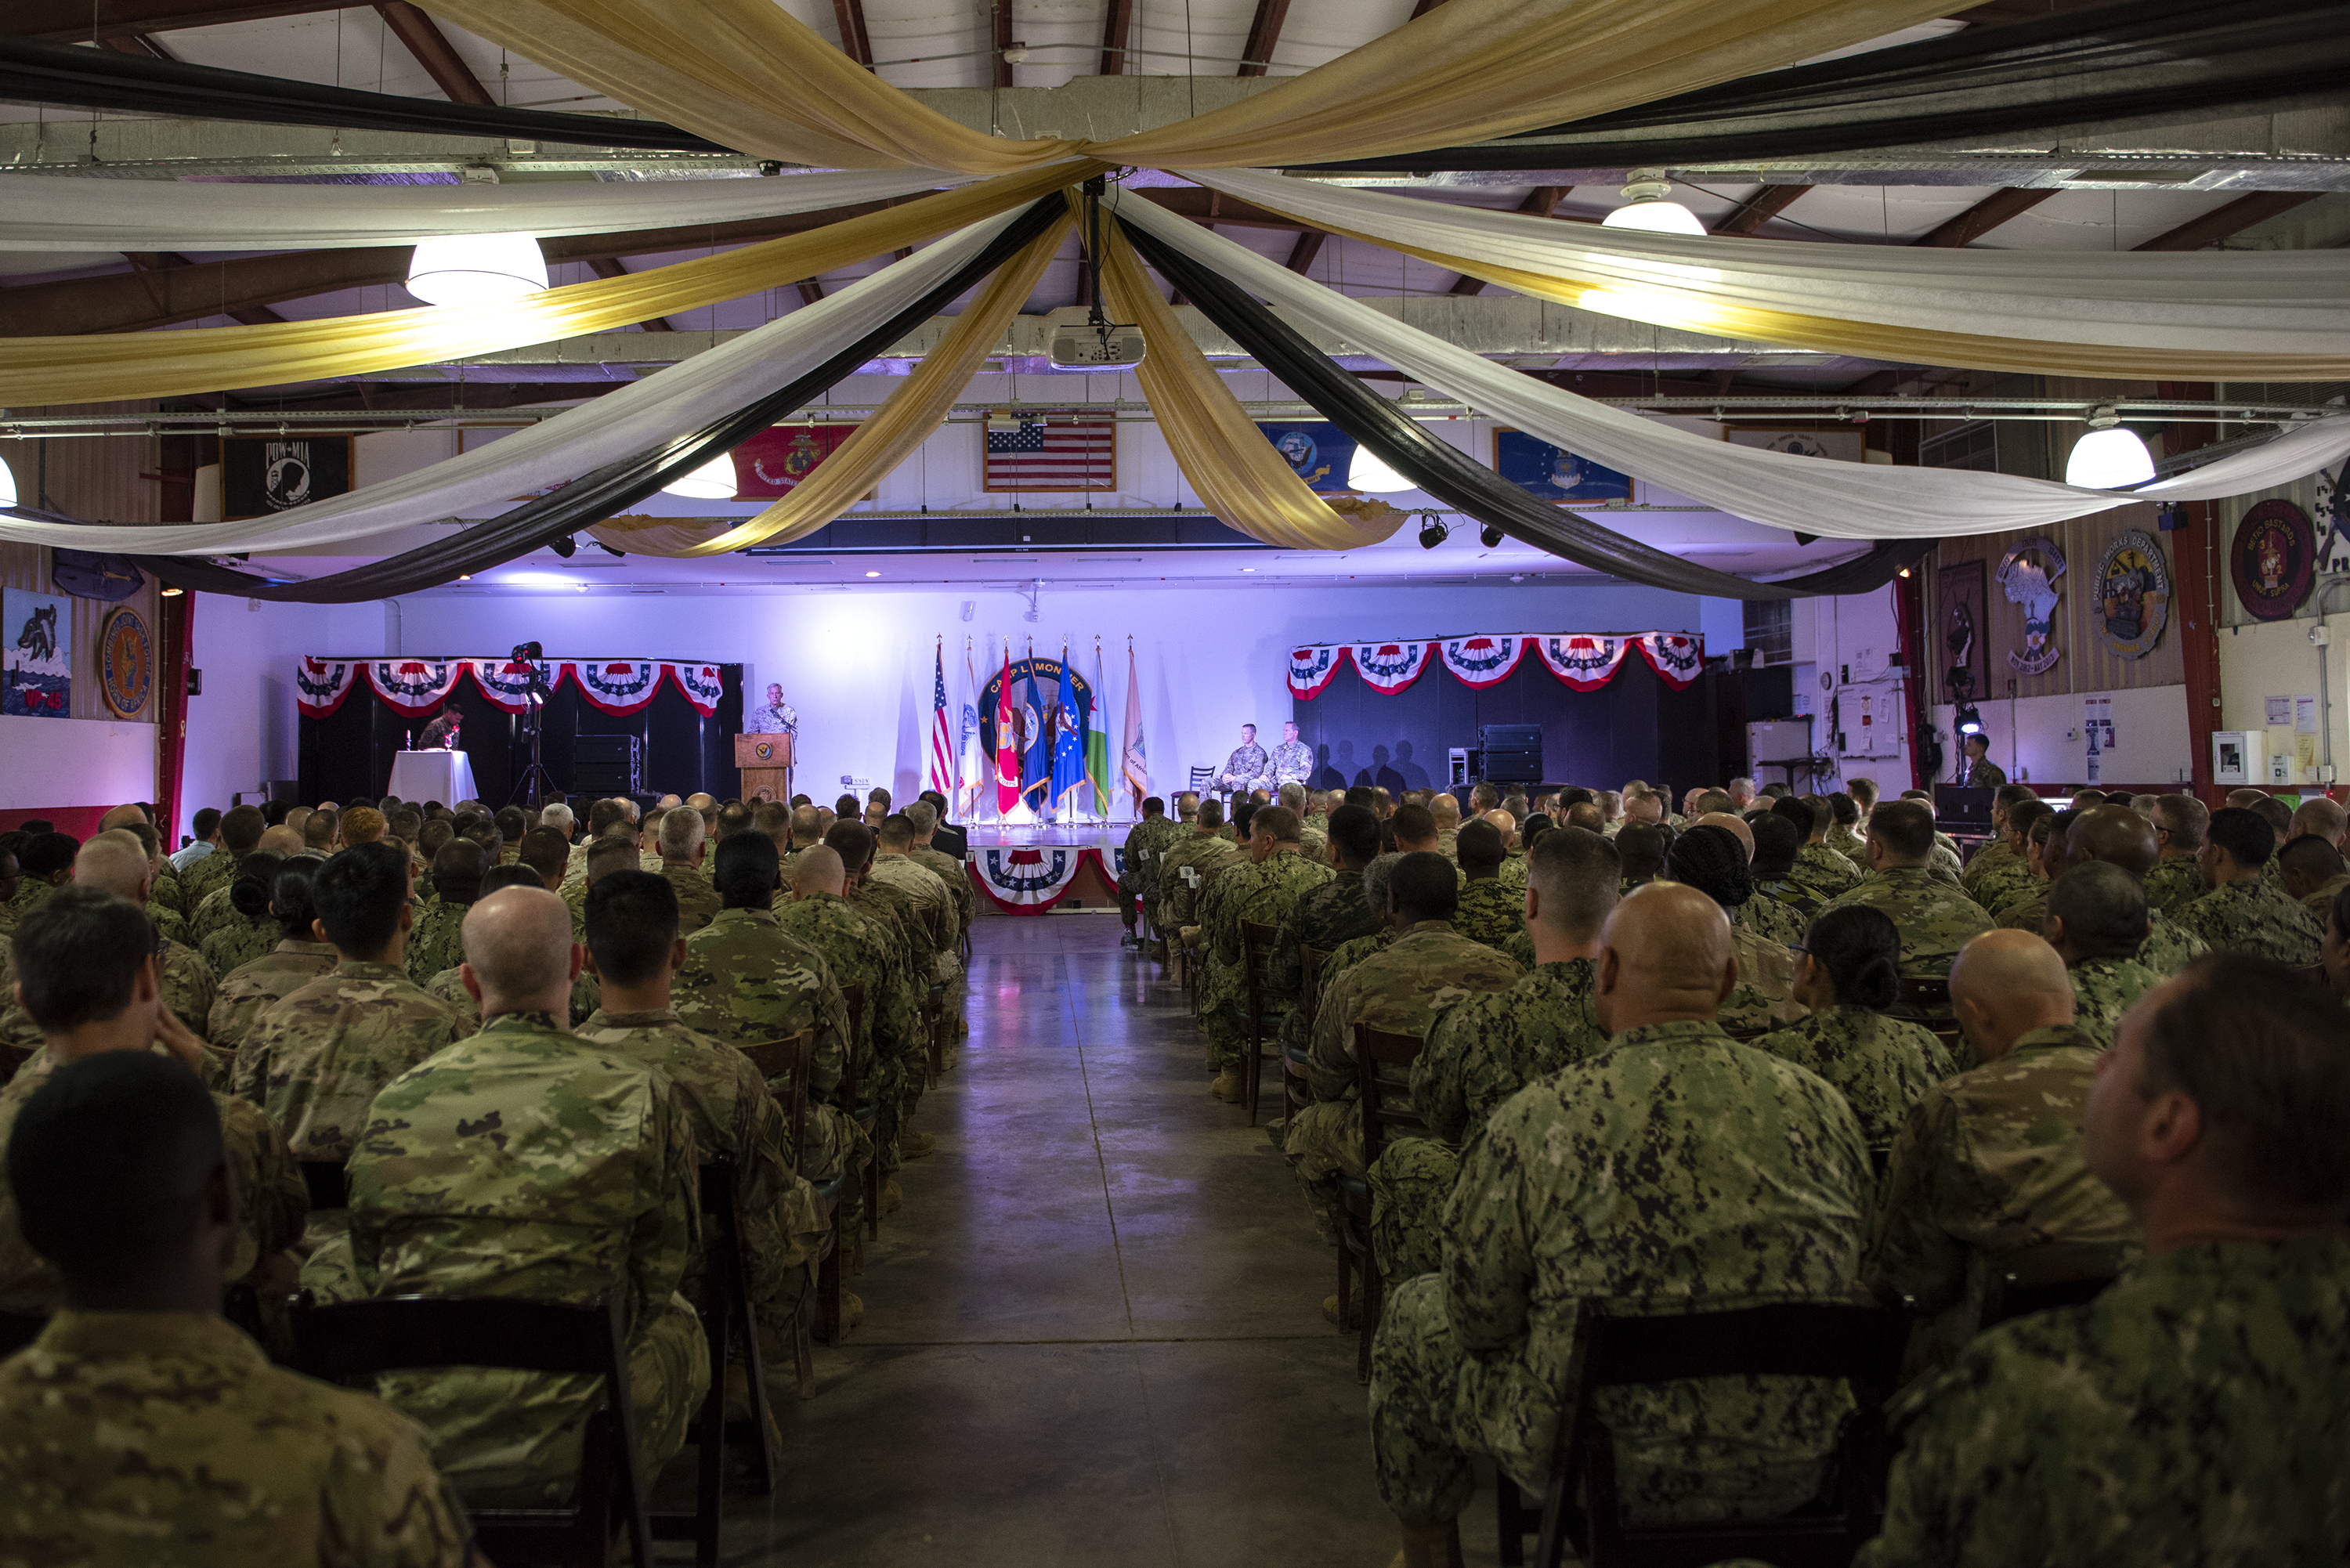 U.S. Marine Corps Gen. Thomas Waldhauser, commander of United States Africa Command, addresses distinguished guests and service members for Combined Joint Task Force Horn of Africa on Camp Lemonnier, Djibouti, June 14, 2018. Waldhauser presided over the change of command for CJTF-HOA from U.S. Army Maj. Gen. William Zana to Brig. Gen. James Craig. (U.S. Air National Guard photo by Master Sgt. Sarah Mattison)